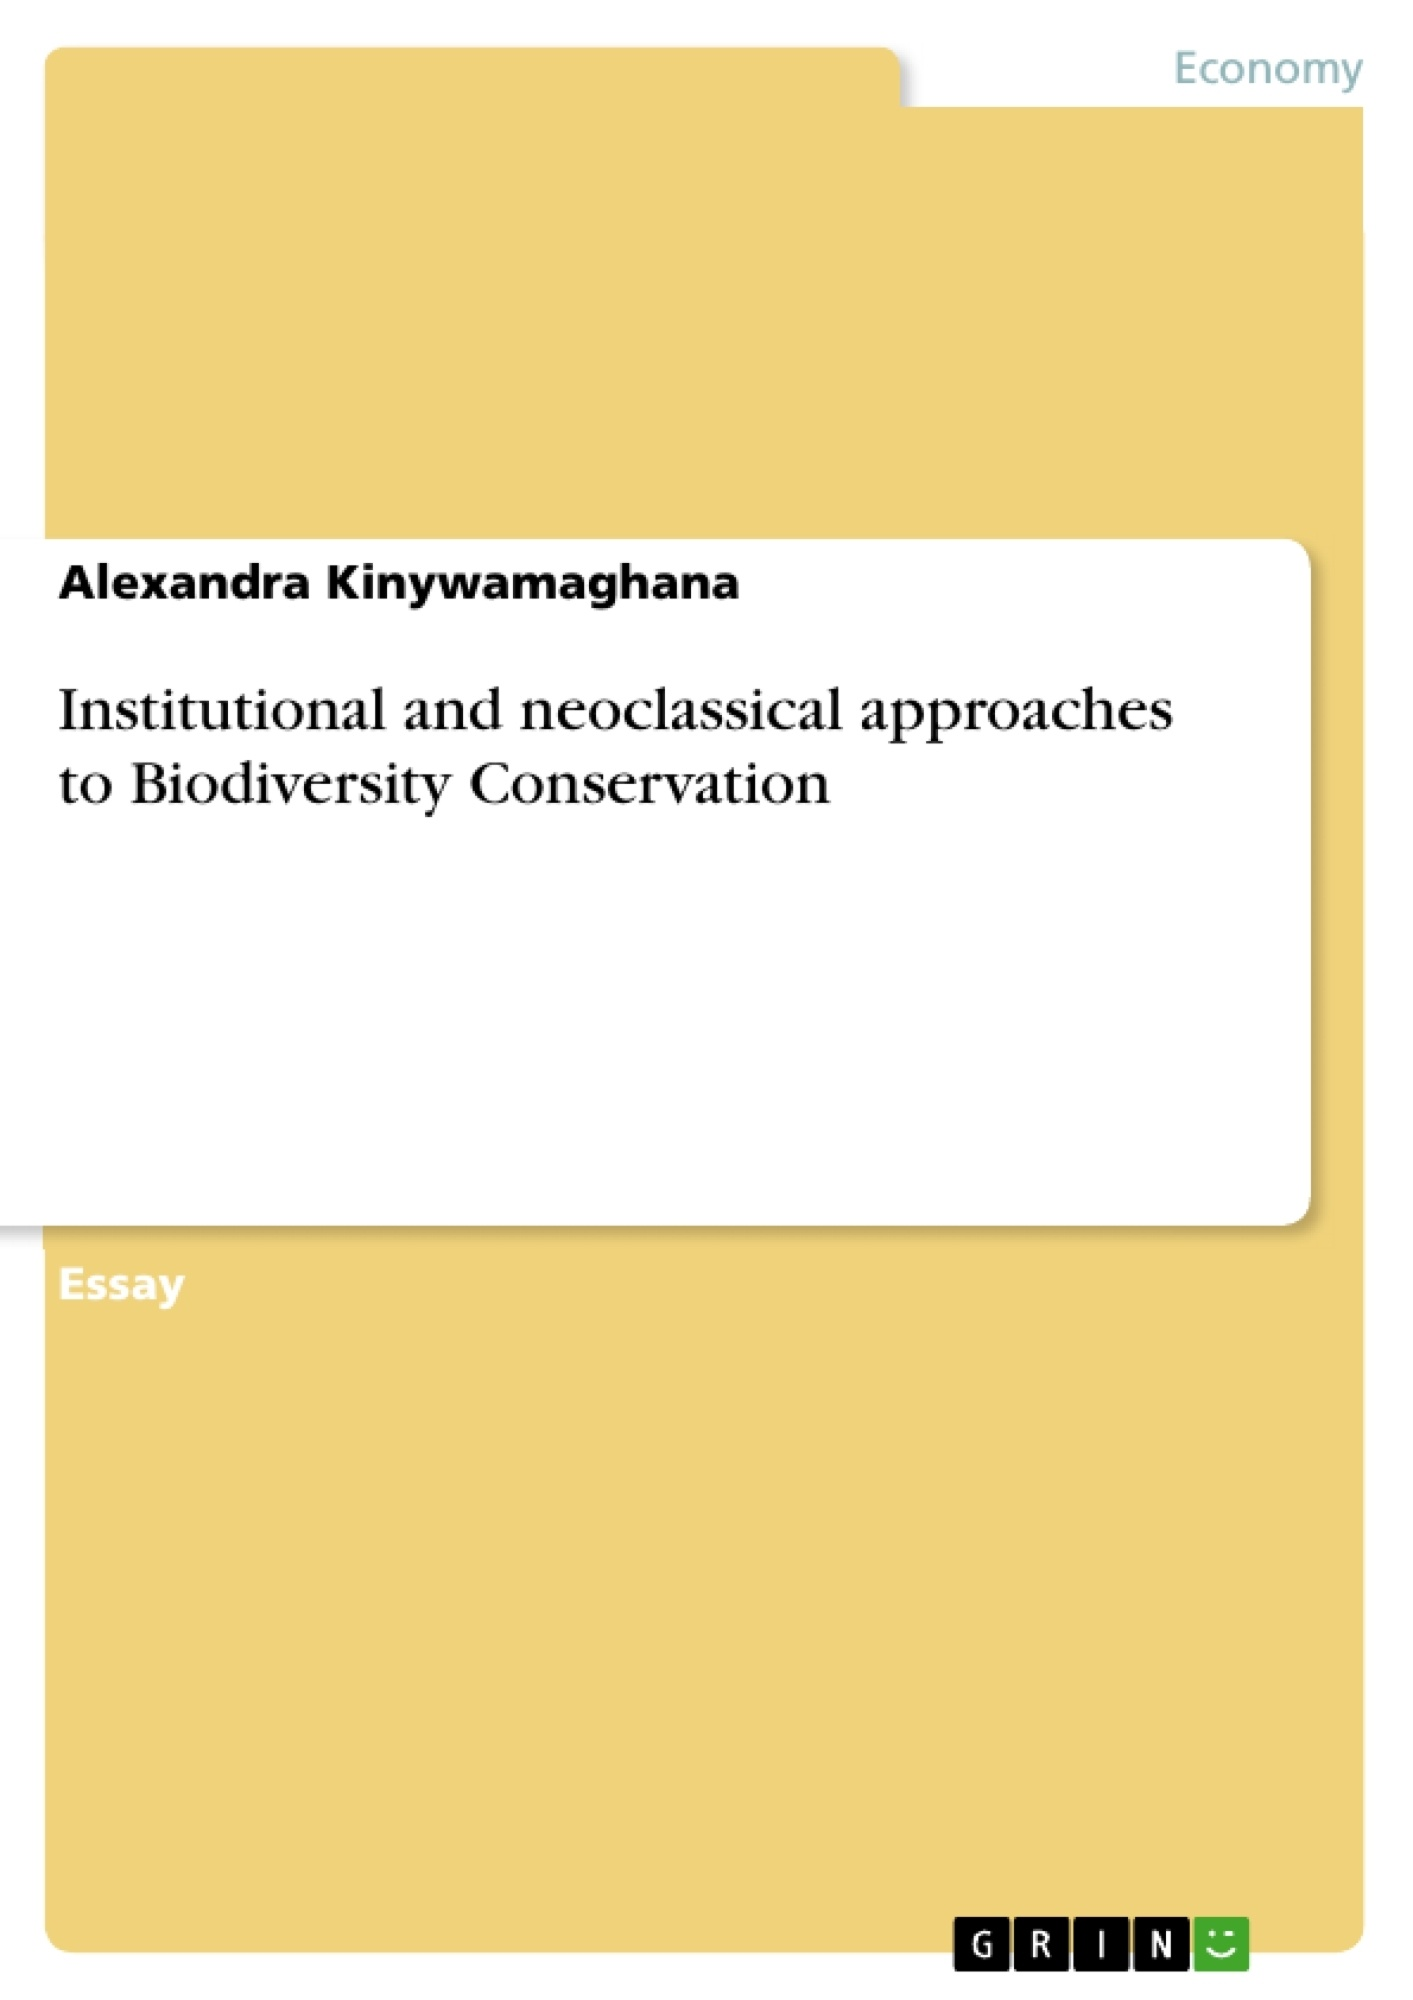 Title: Institutional and neoclassical approaches to Biodiversity Conservation